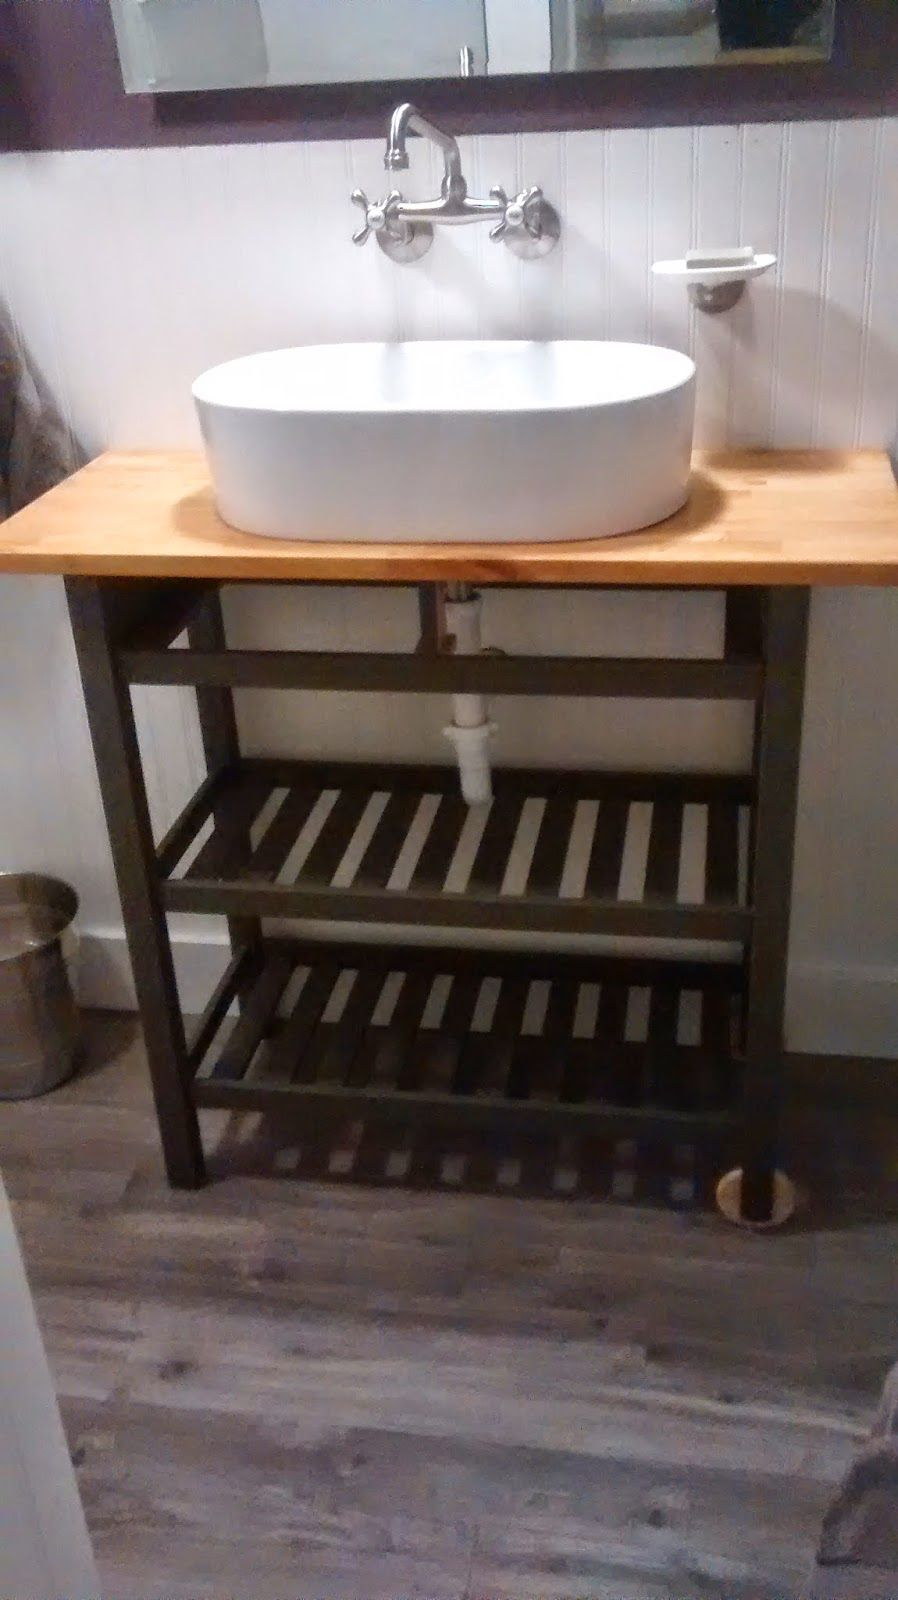 Once Upon An Acre Ikea Kitchen Cart Hack Turning A Boring Kitchen Cart Into A Fabulous Bathroom Vanit Remodel Bedroom Kids Bedroom Remodel Ikea Kitchen Cart